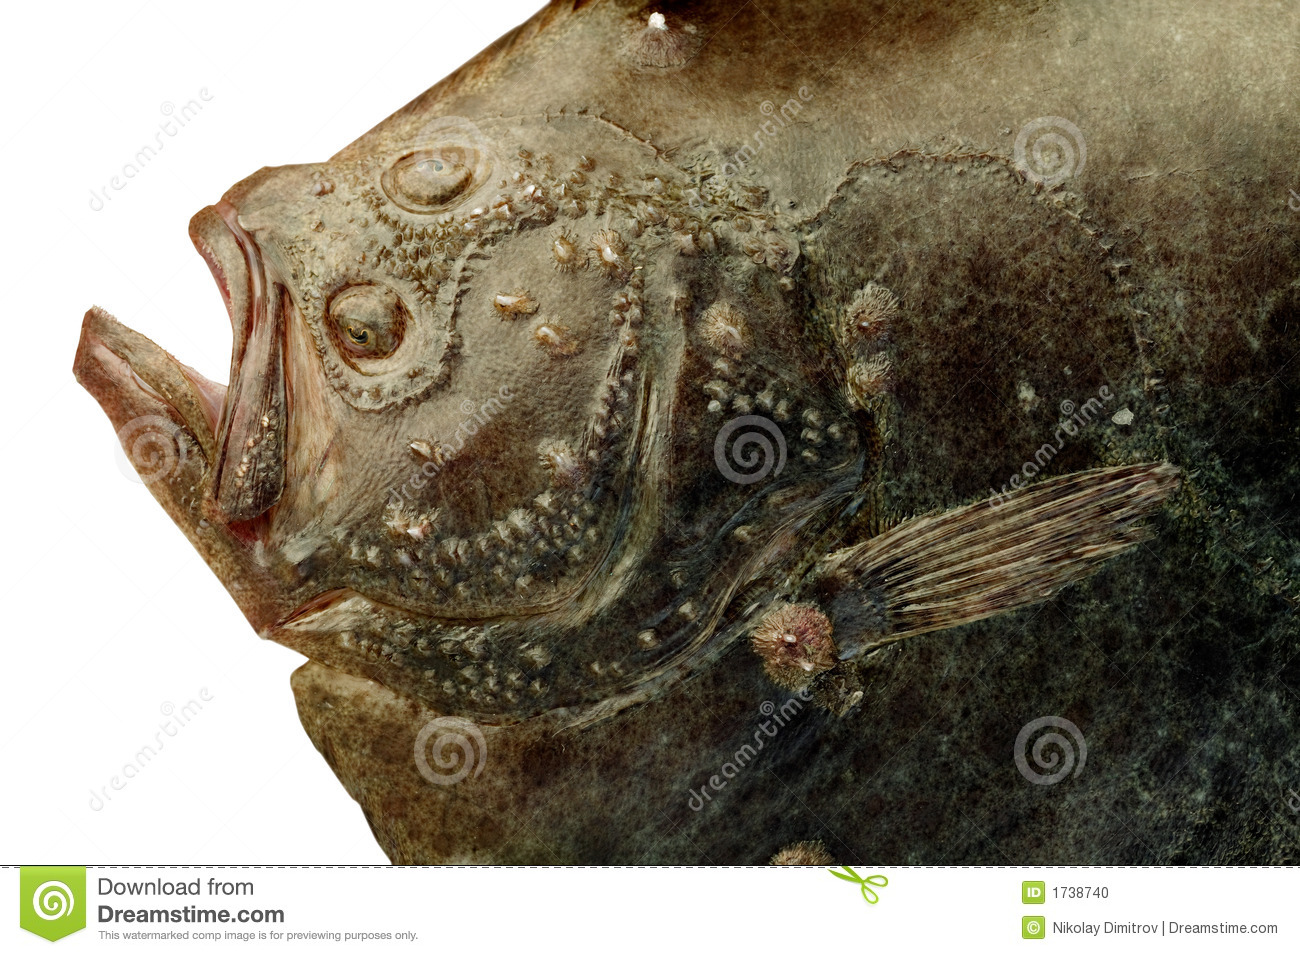 Turbot fish stock photo image 1738740 for Turbot fish price